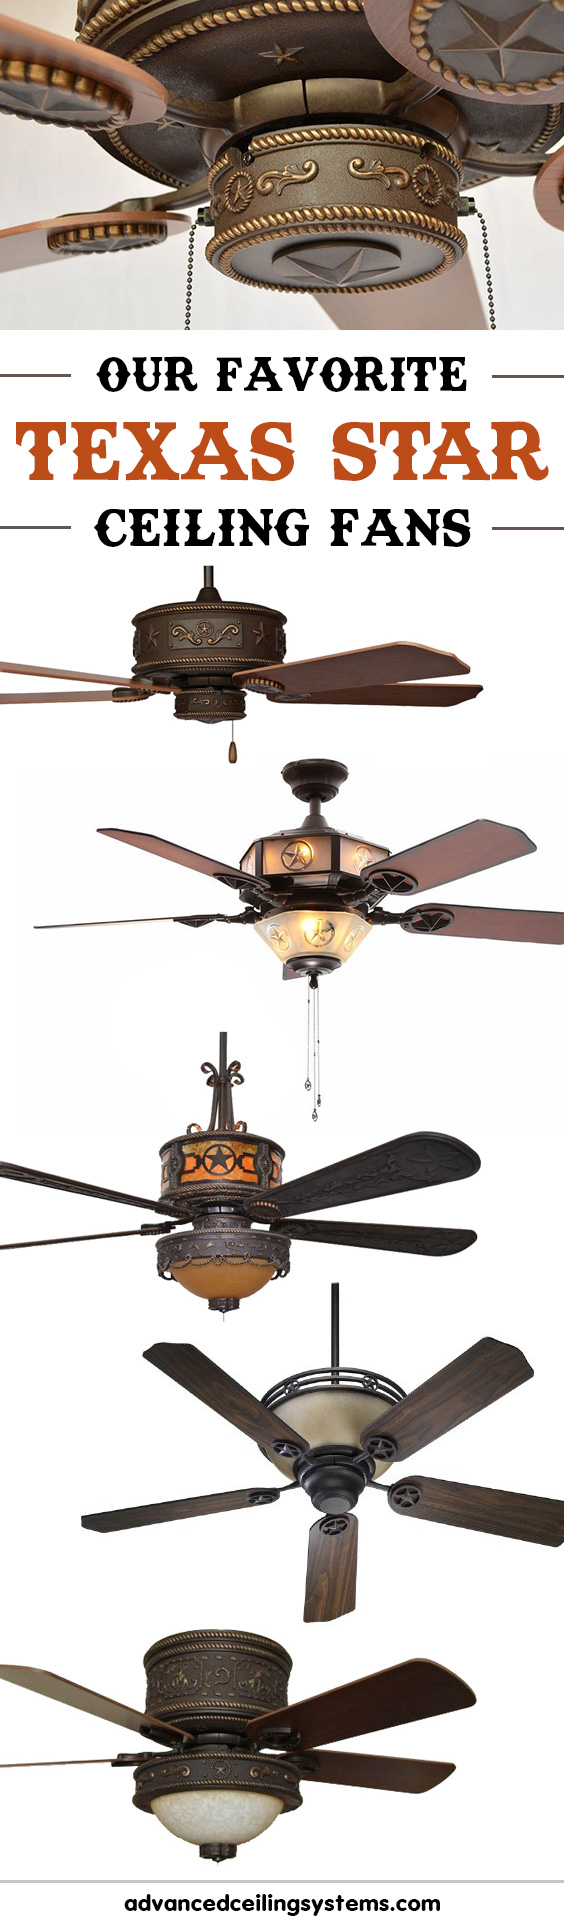 Those Looking For A Texas Star Ceiling Fan To Compliment Their Western Decor Will Love Our Top Picks These 5 Lone Fans Combine Rustic Style